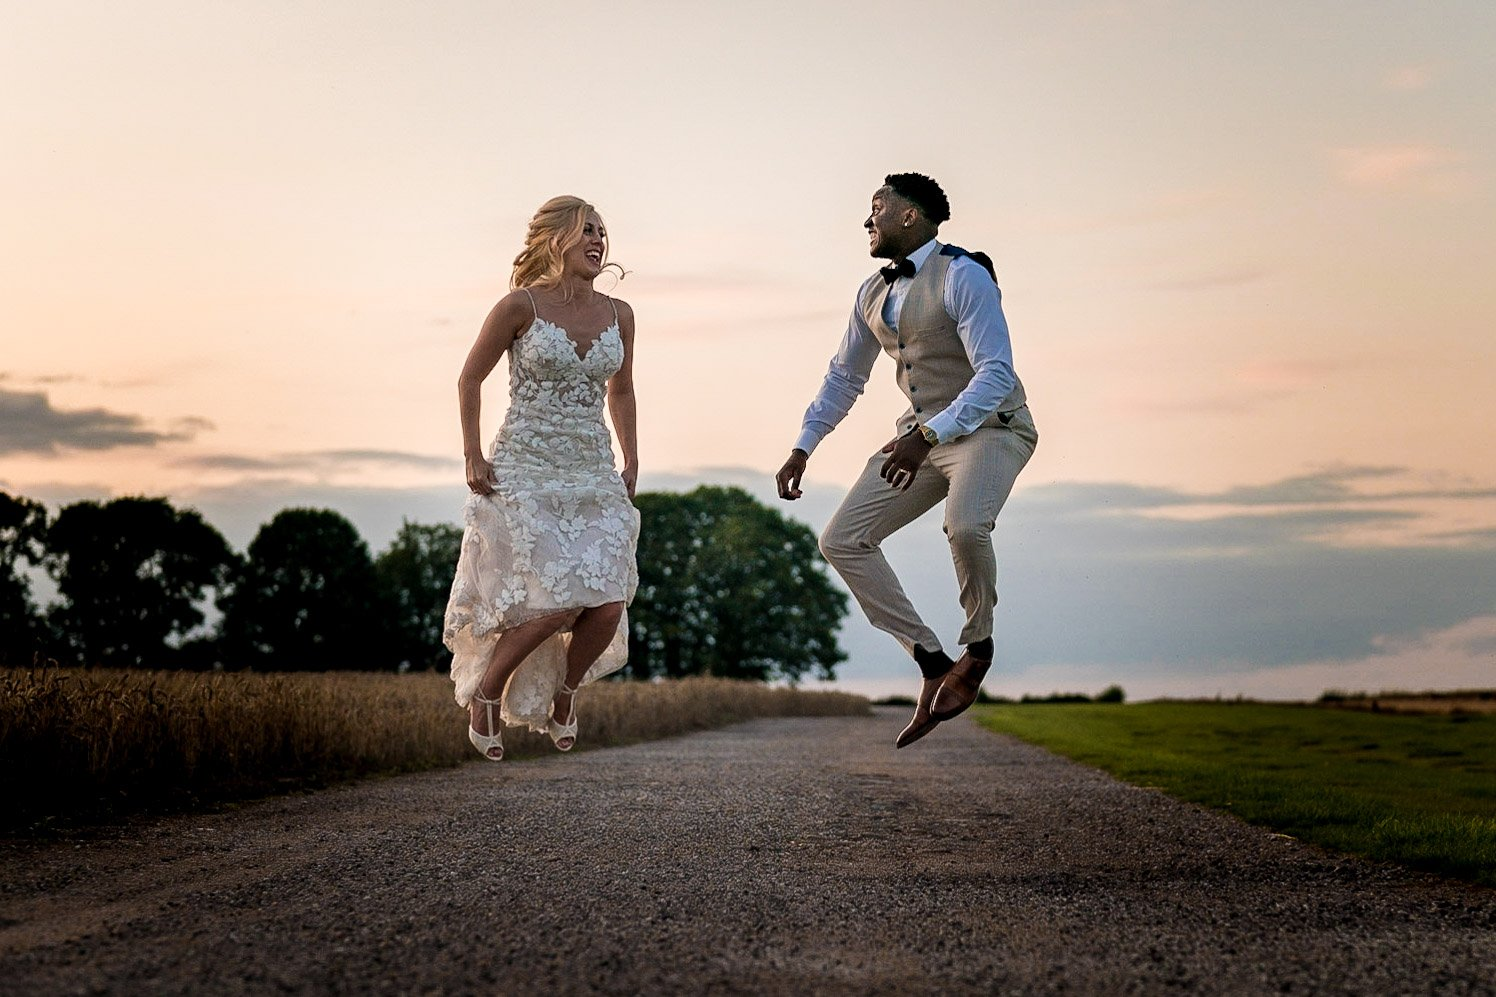 Your Favourite Frame YFFUK Mwasuku Norton Fields Atherstone sunset in front of the wheat fields golden skies and jumping for joy on their wedding day nothing but smiles and happiness